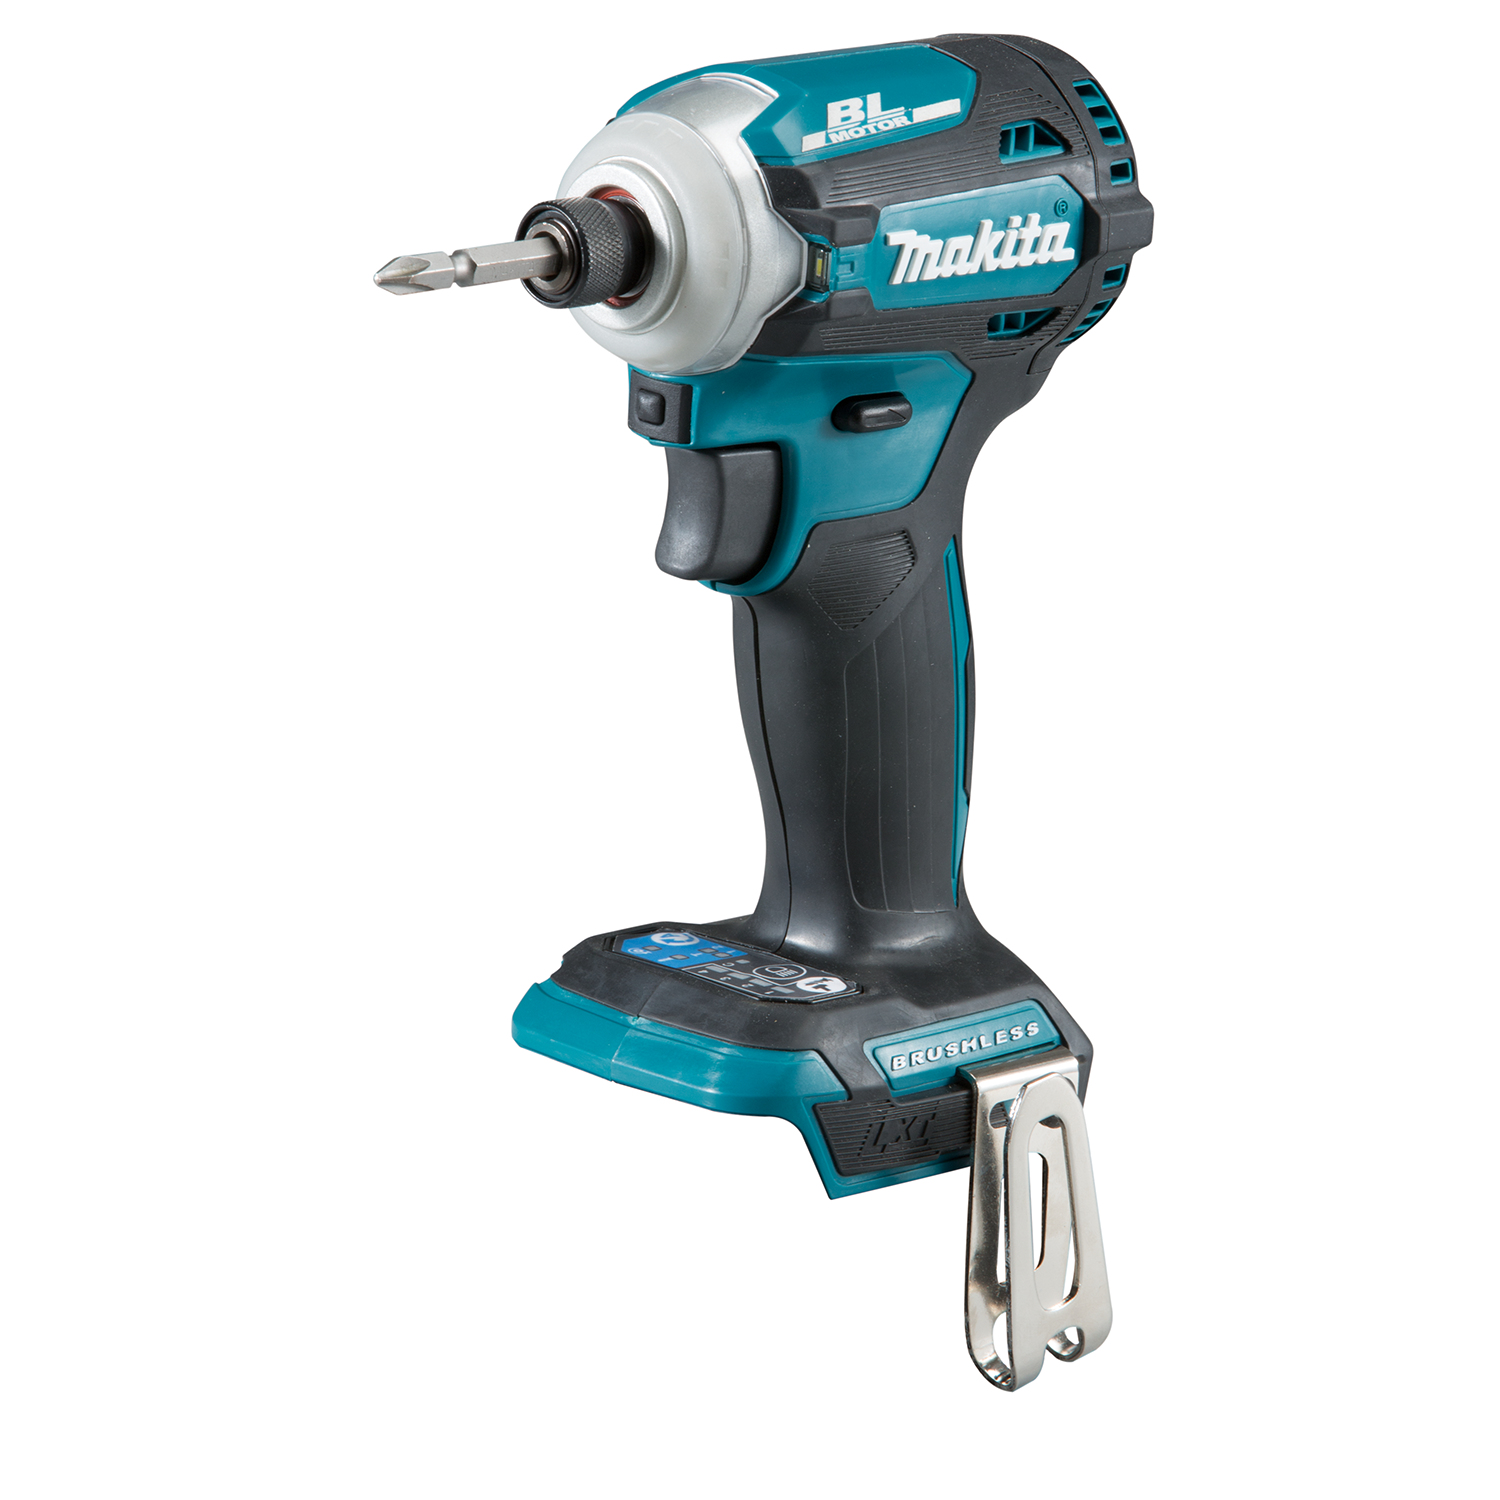 Brushless impact driver from Makita